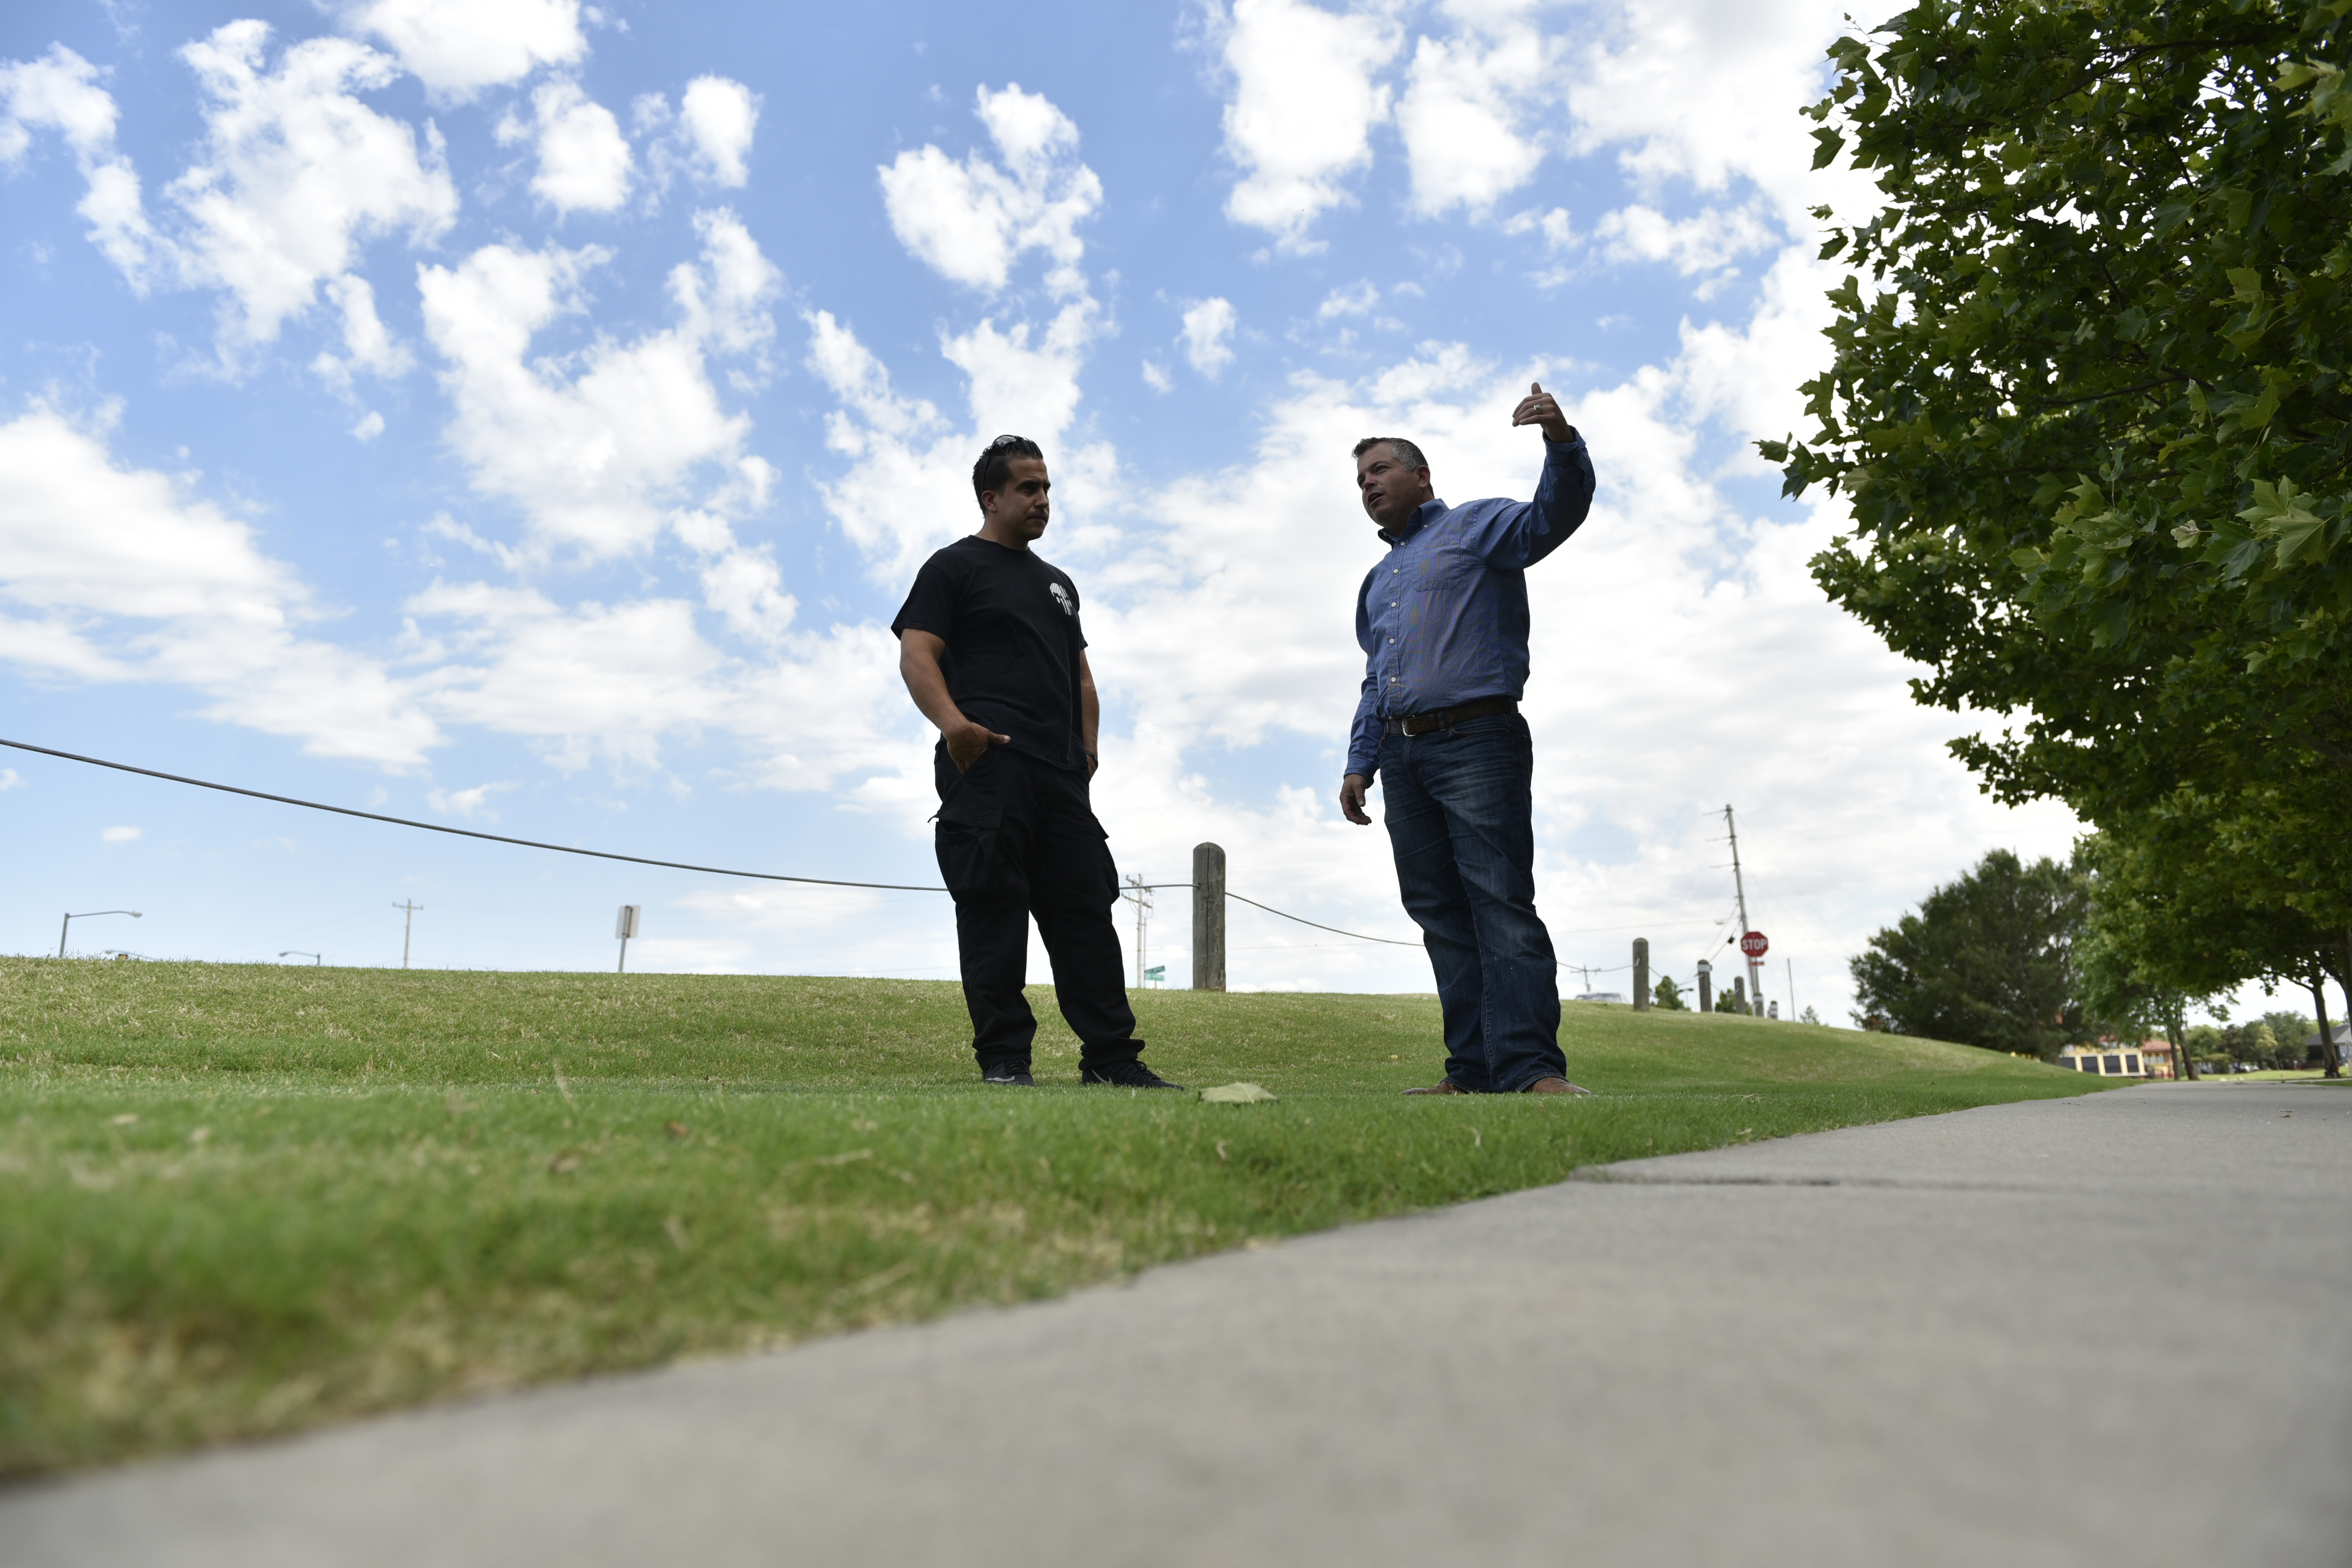 Juan Carlos Nazario, left, and Bryan Whittle speak on June 21, 2018, about their experience of confronting and killing a gunman on May 24 outside Louie's On the Lake in Oklahoma City. MUST CREDIT: Photo for The Washington Post by Nick Oxford